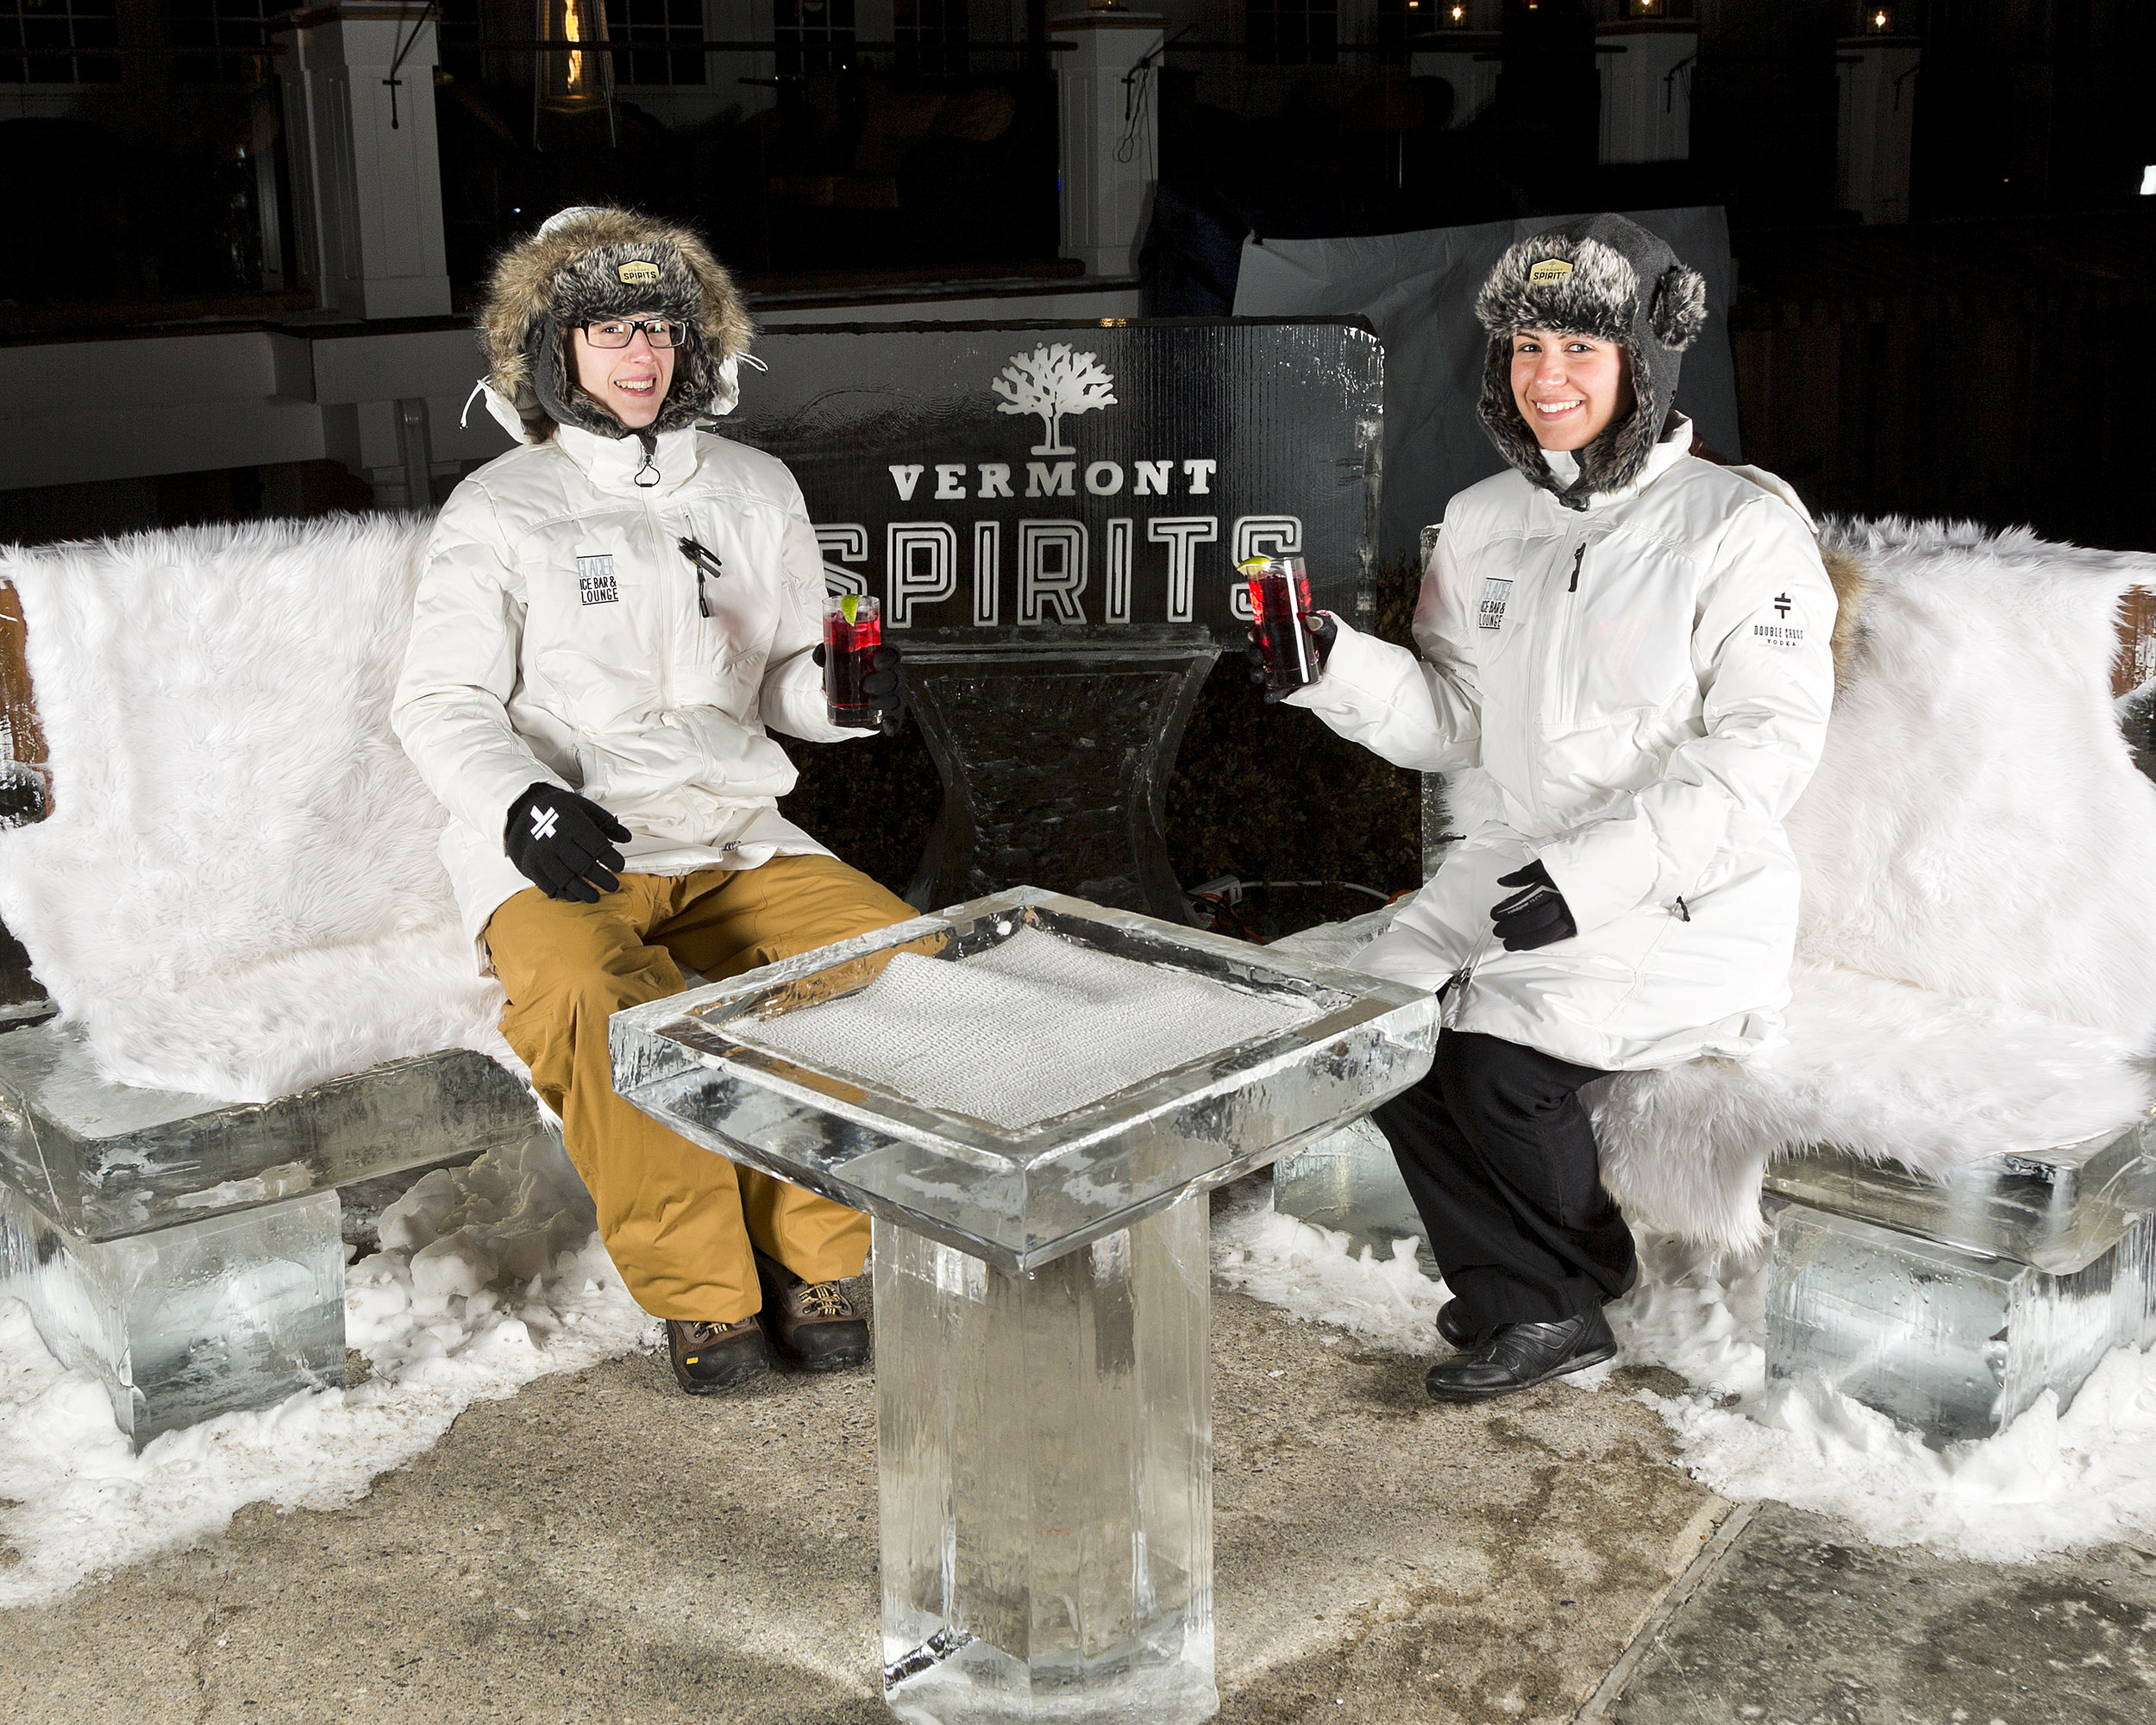 Sagamore-Ice-Bar-10.jpg